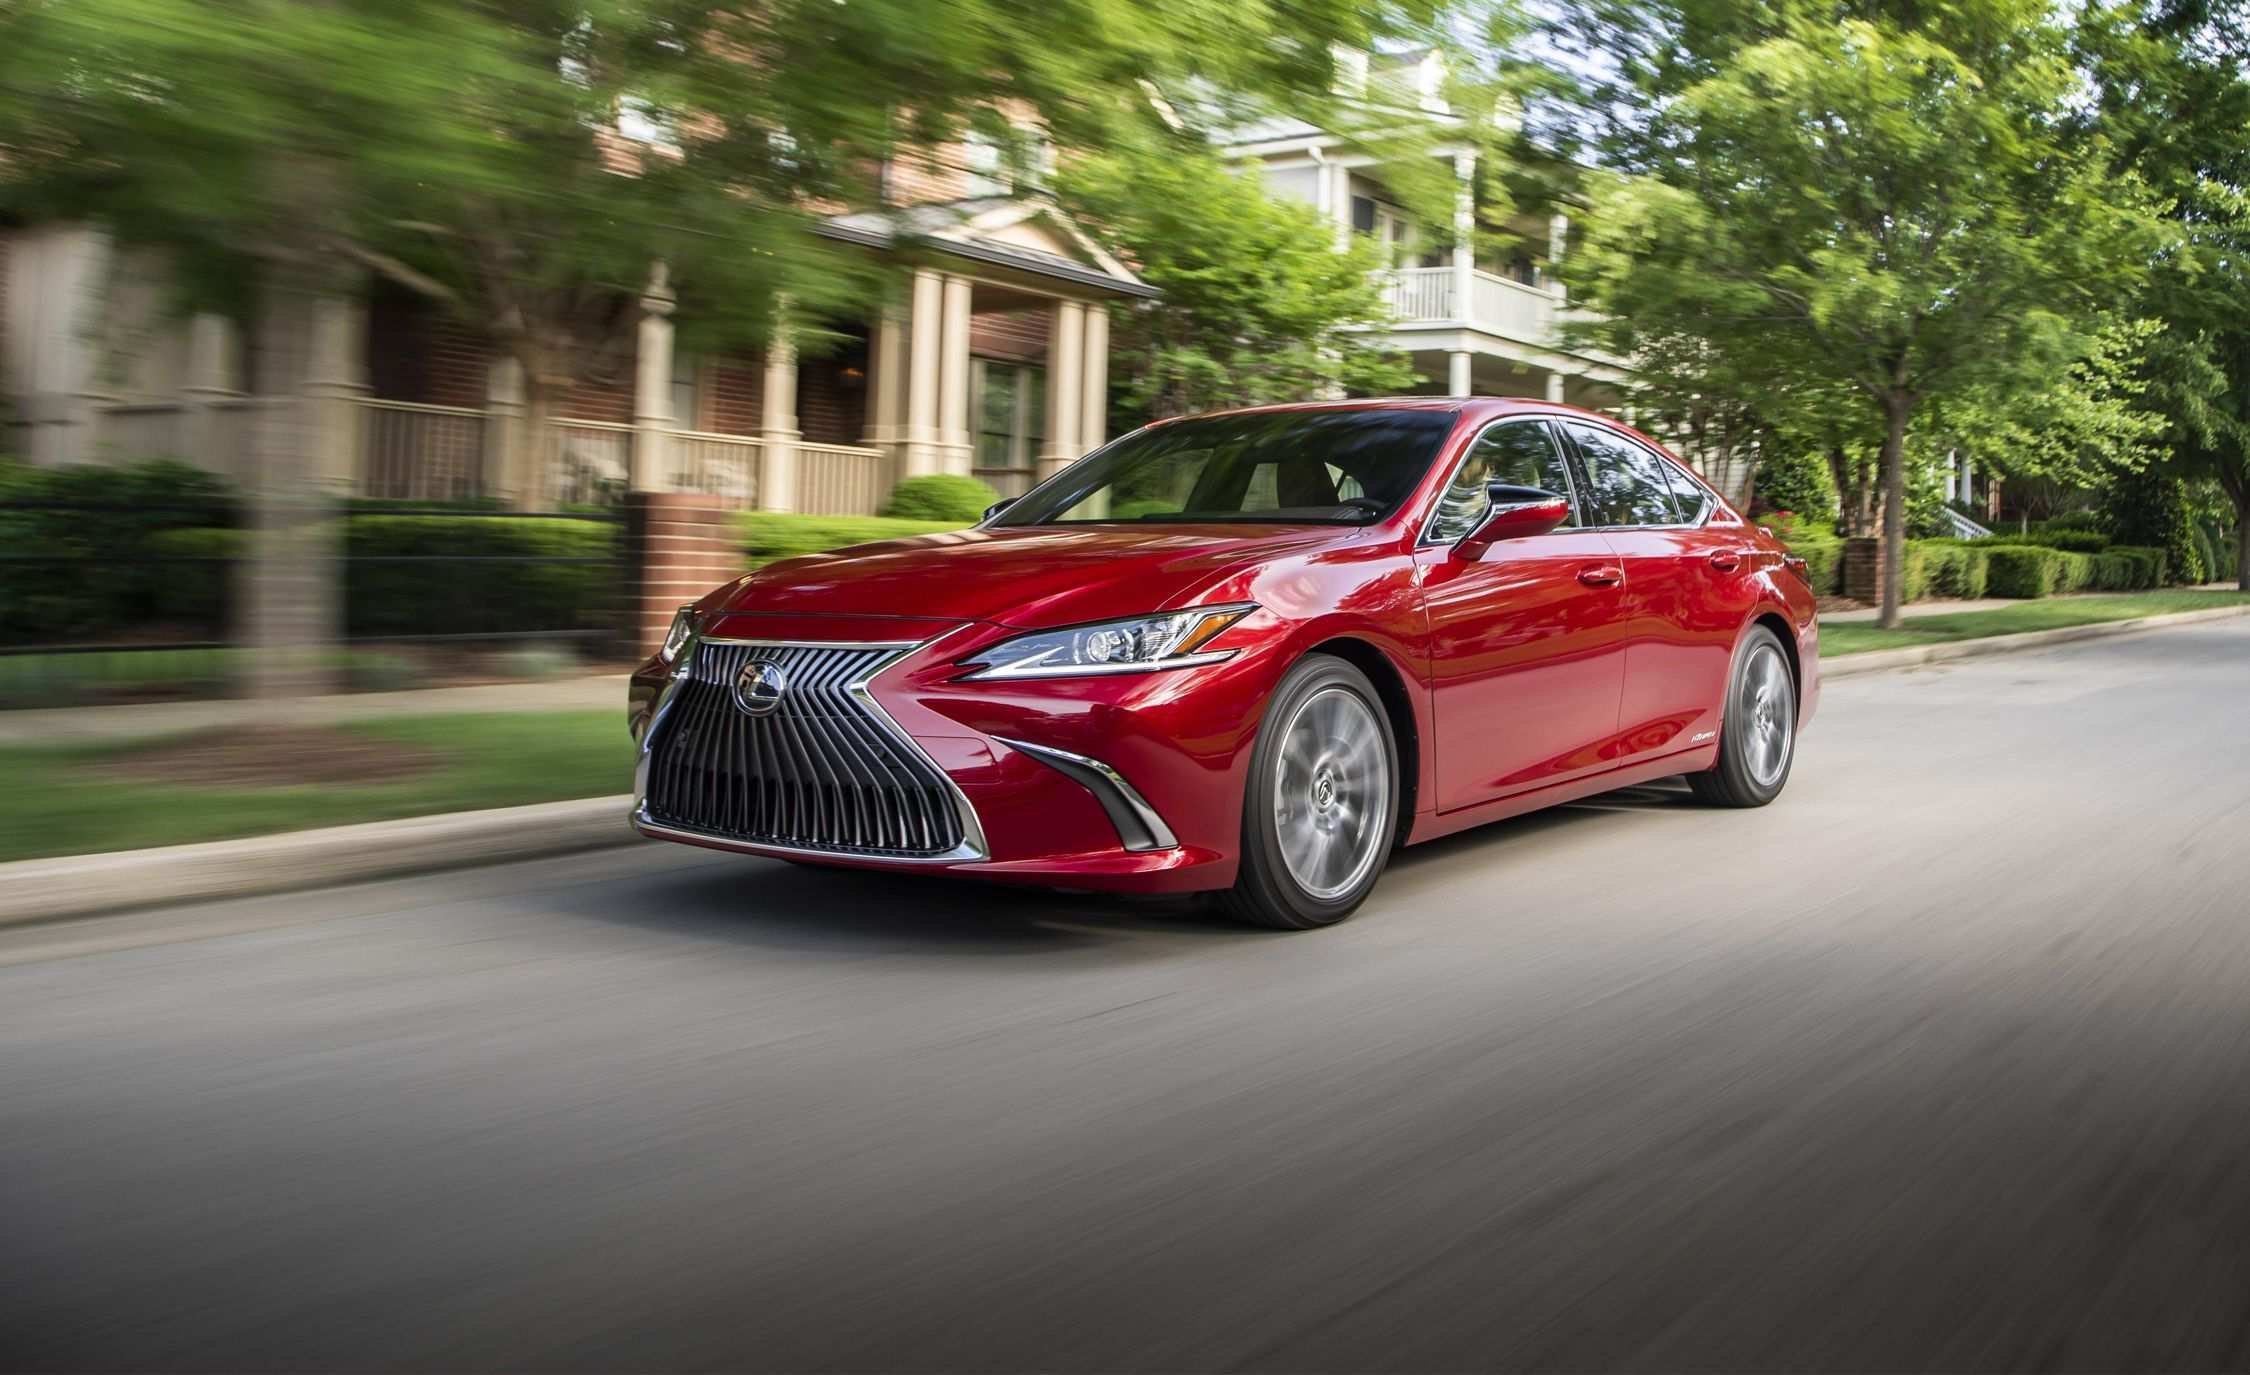 56 New 2020 Lexus Es 350 Brochure Reviews by 2020 Lexus Es 350 Brochure